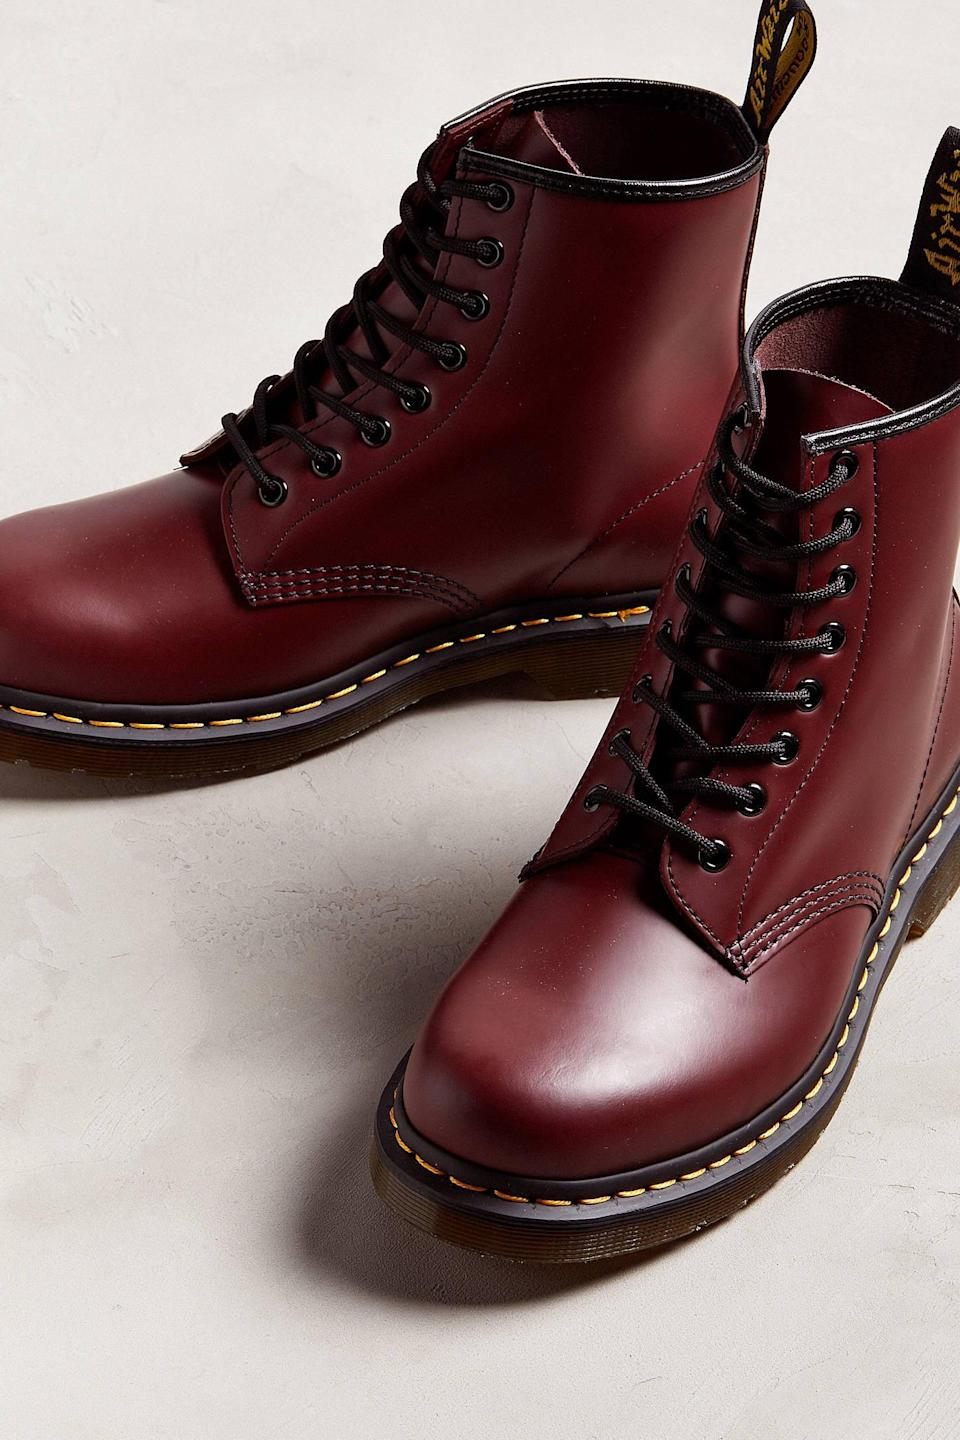 <p>Give his style a step up with these <span>Dr. Martens Core 1460 Smooth Leather Lace Up Boots</span> ($150). If he's not into red, they also come in black, green, and a bunch of other colors.</p>